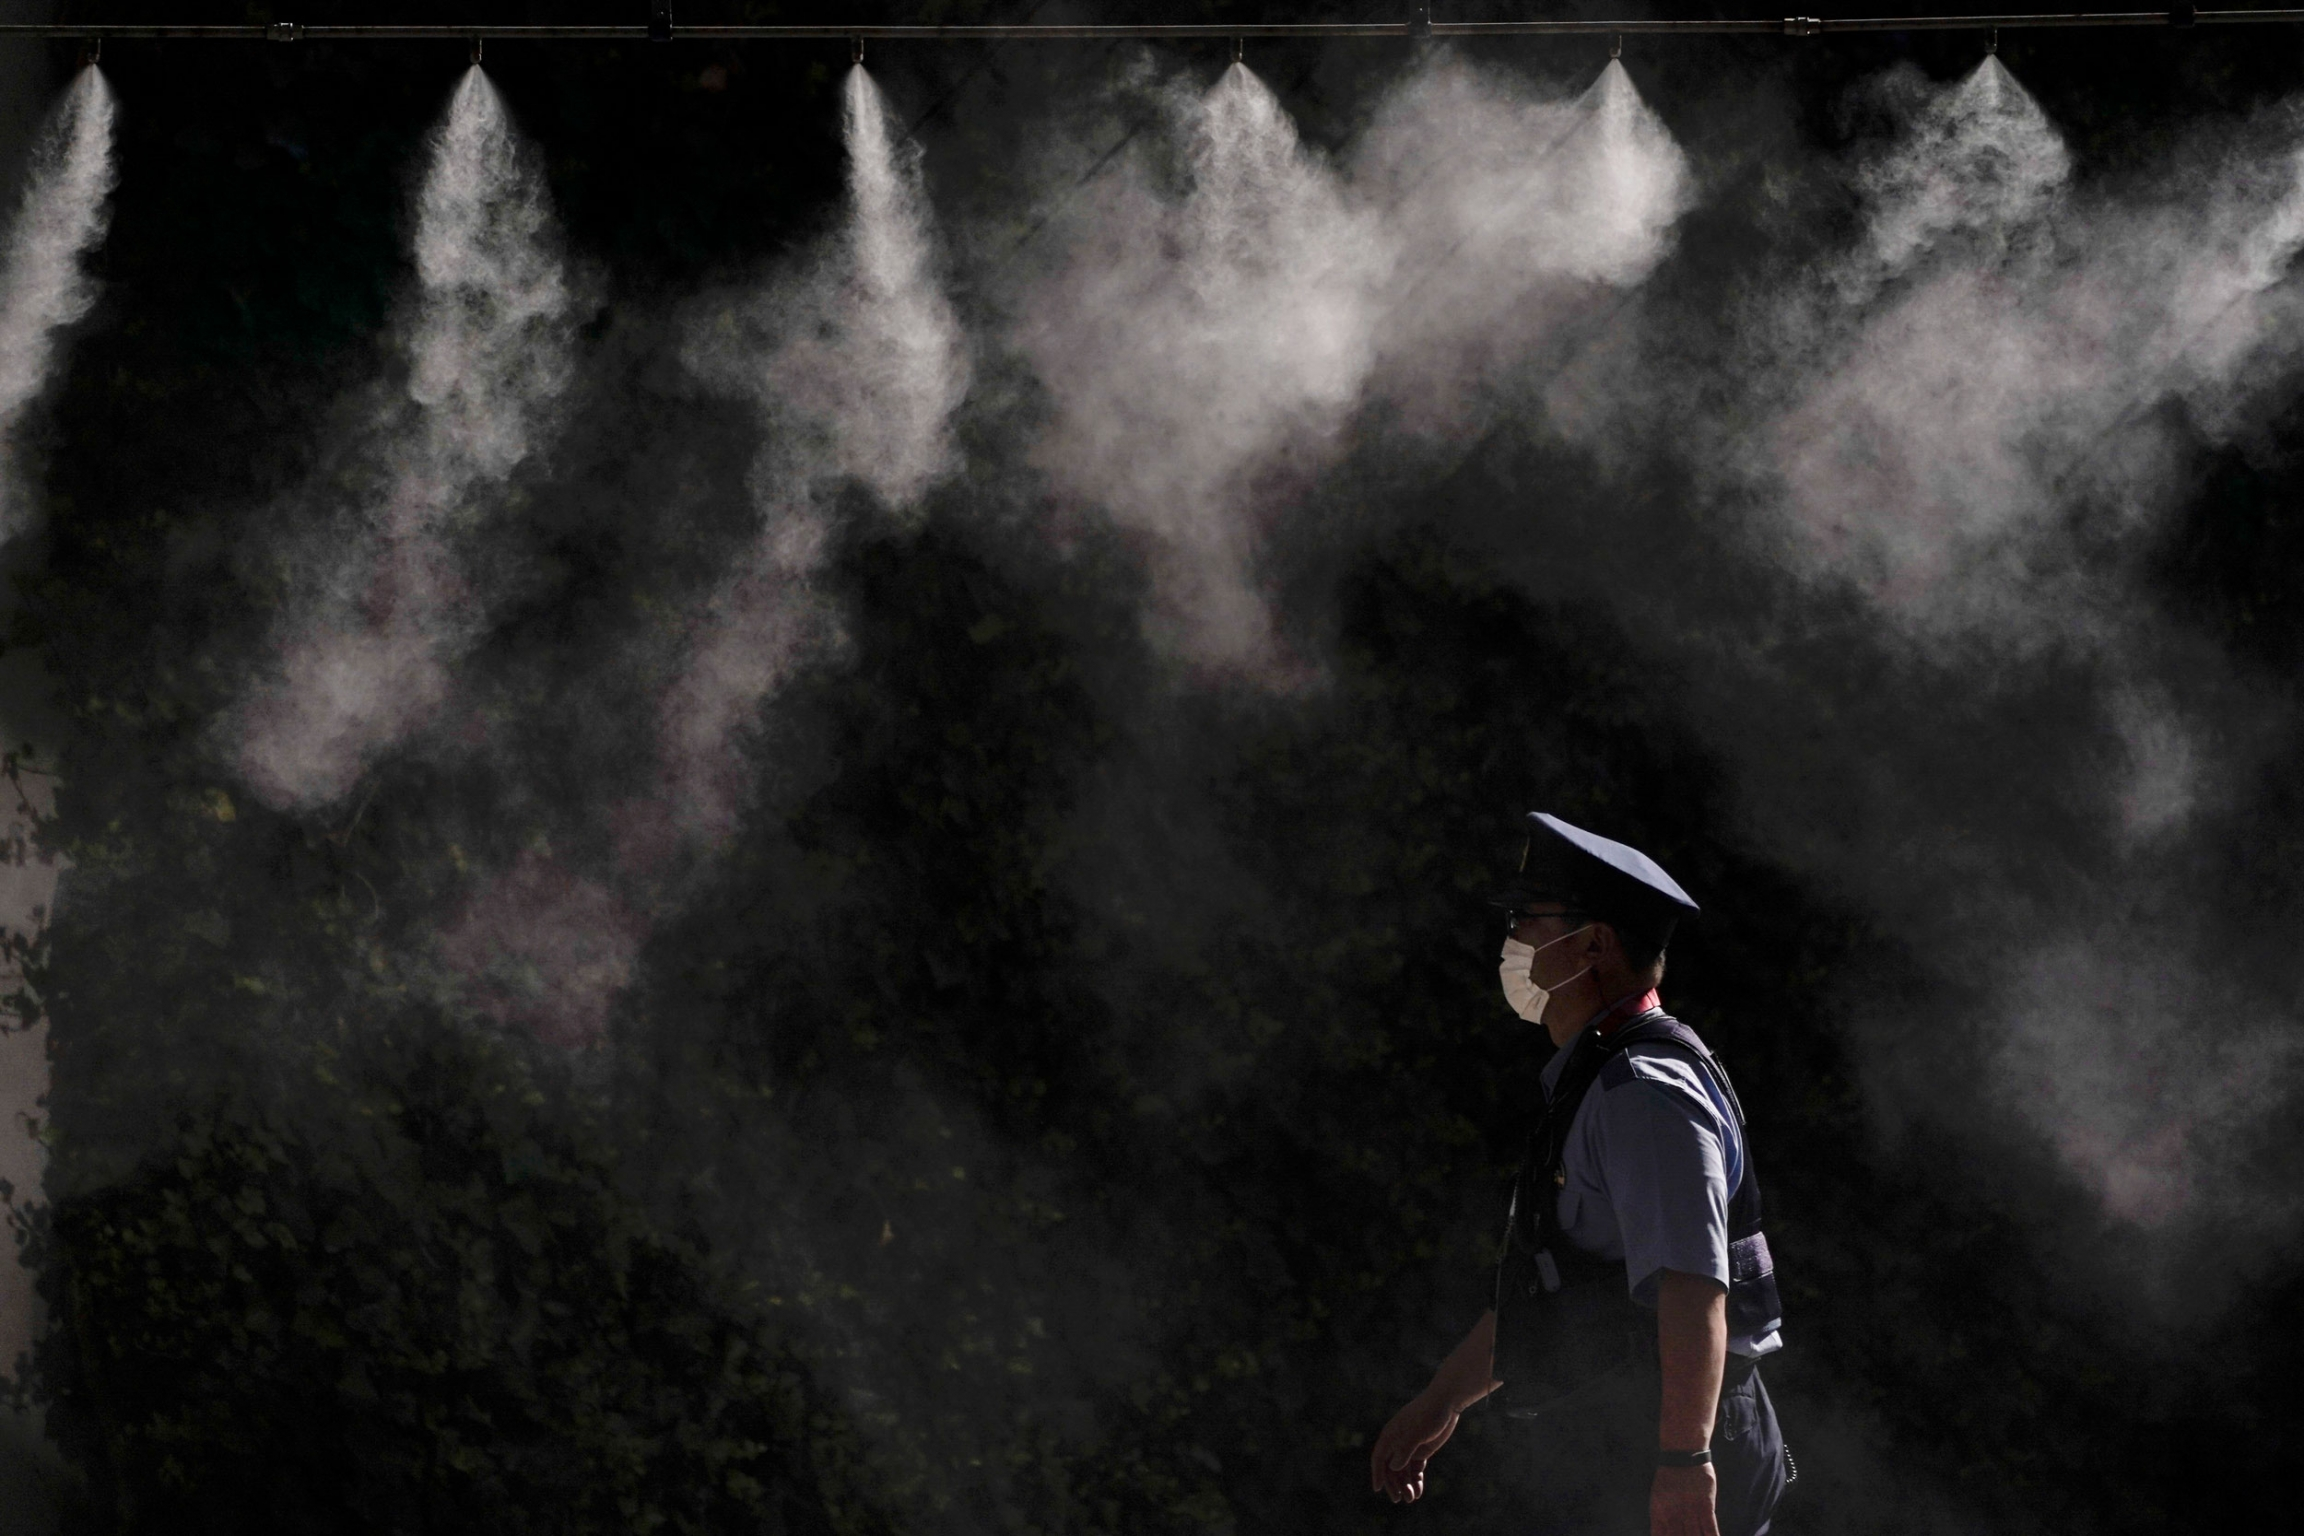 A police officer is shown wearing a white mask and walking under several misters spraying water.